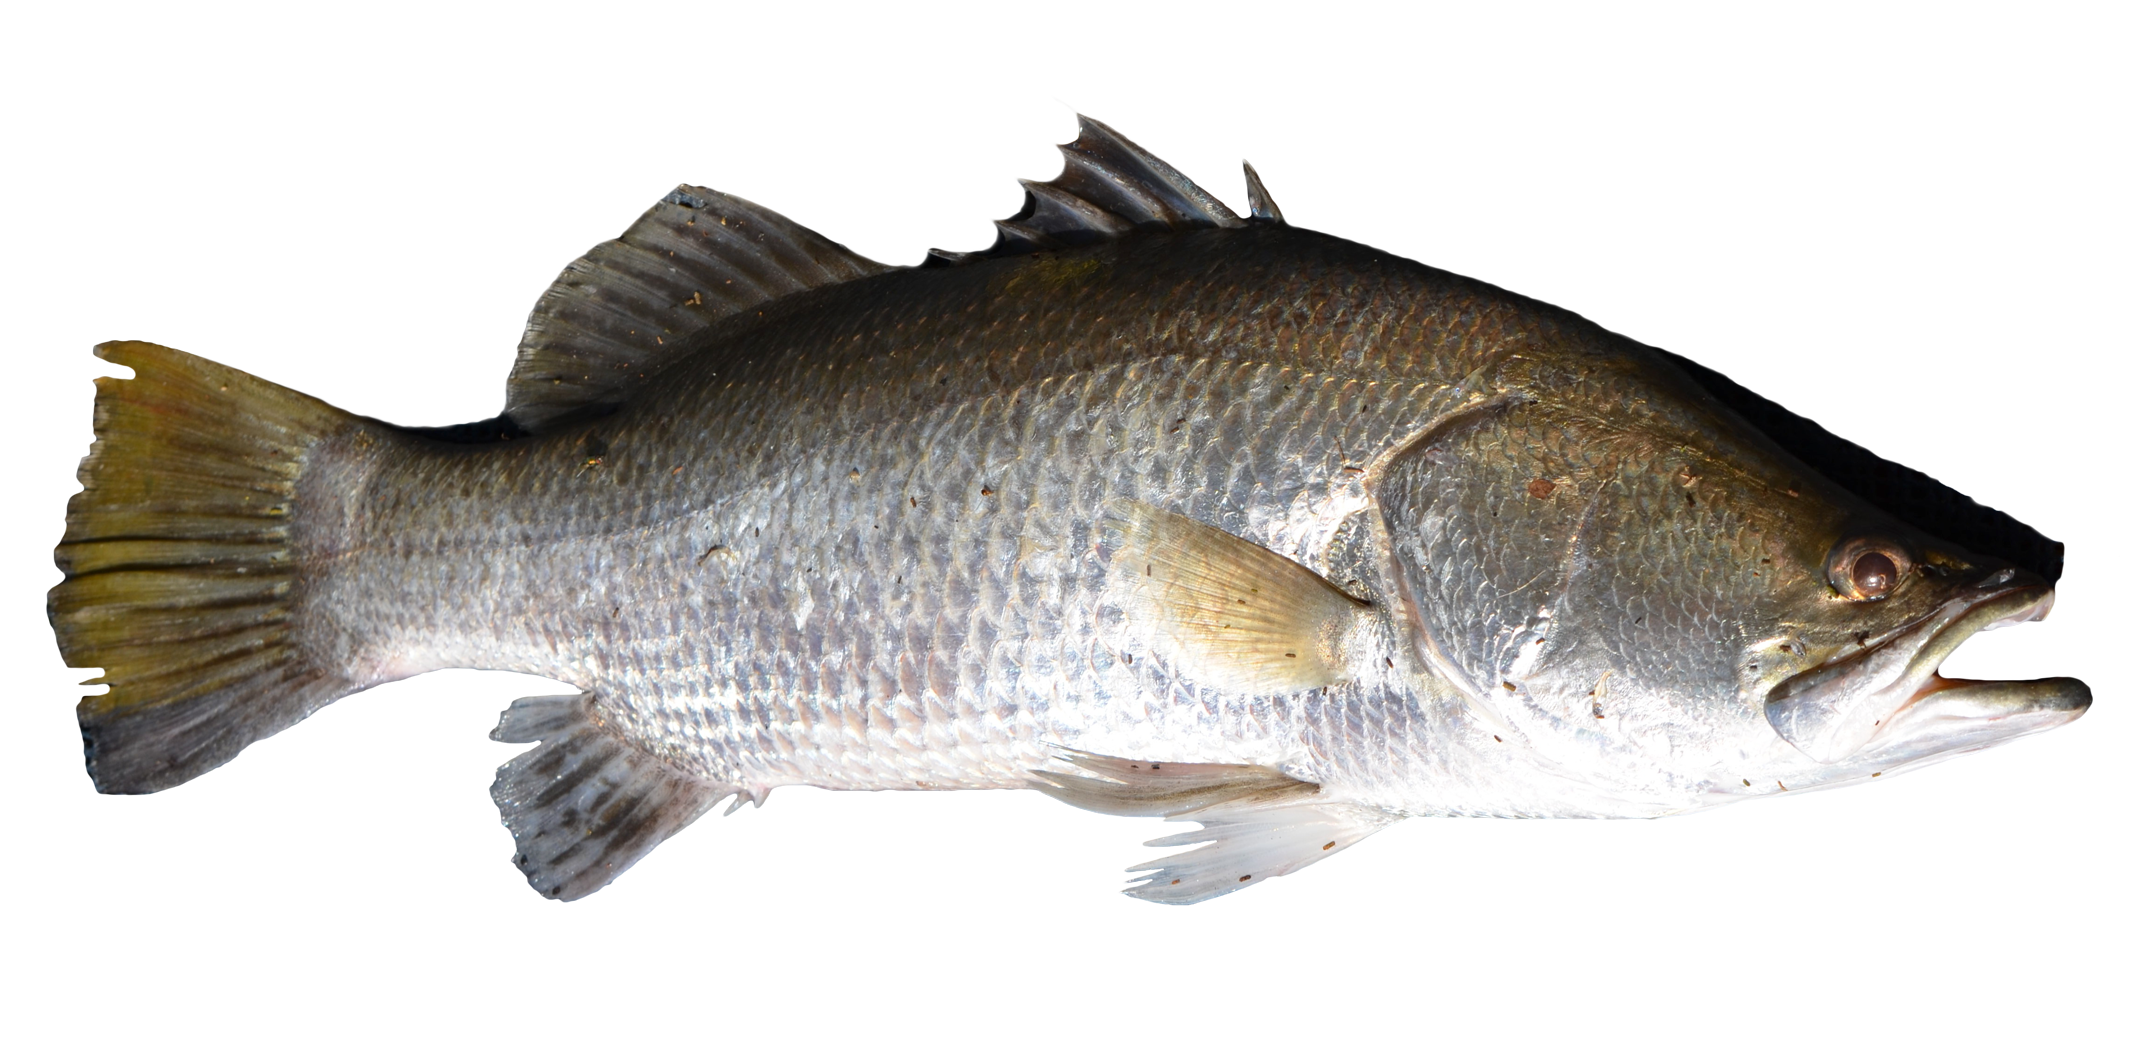 Fish png. Transparent image pngpix